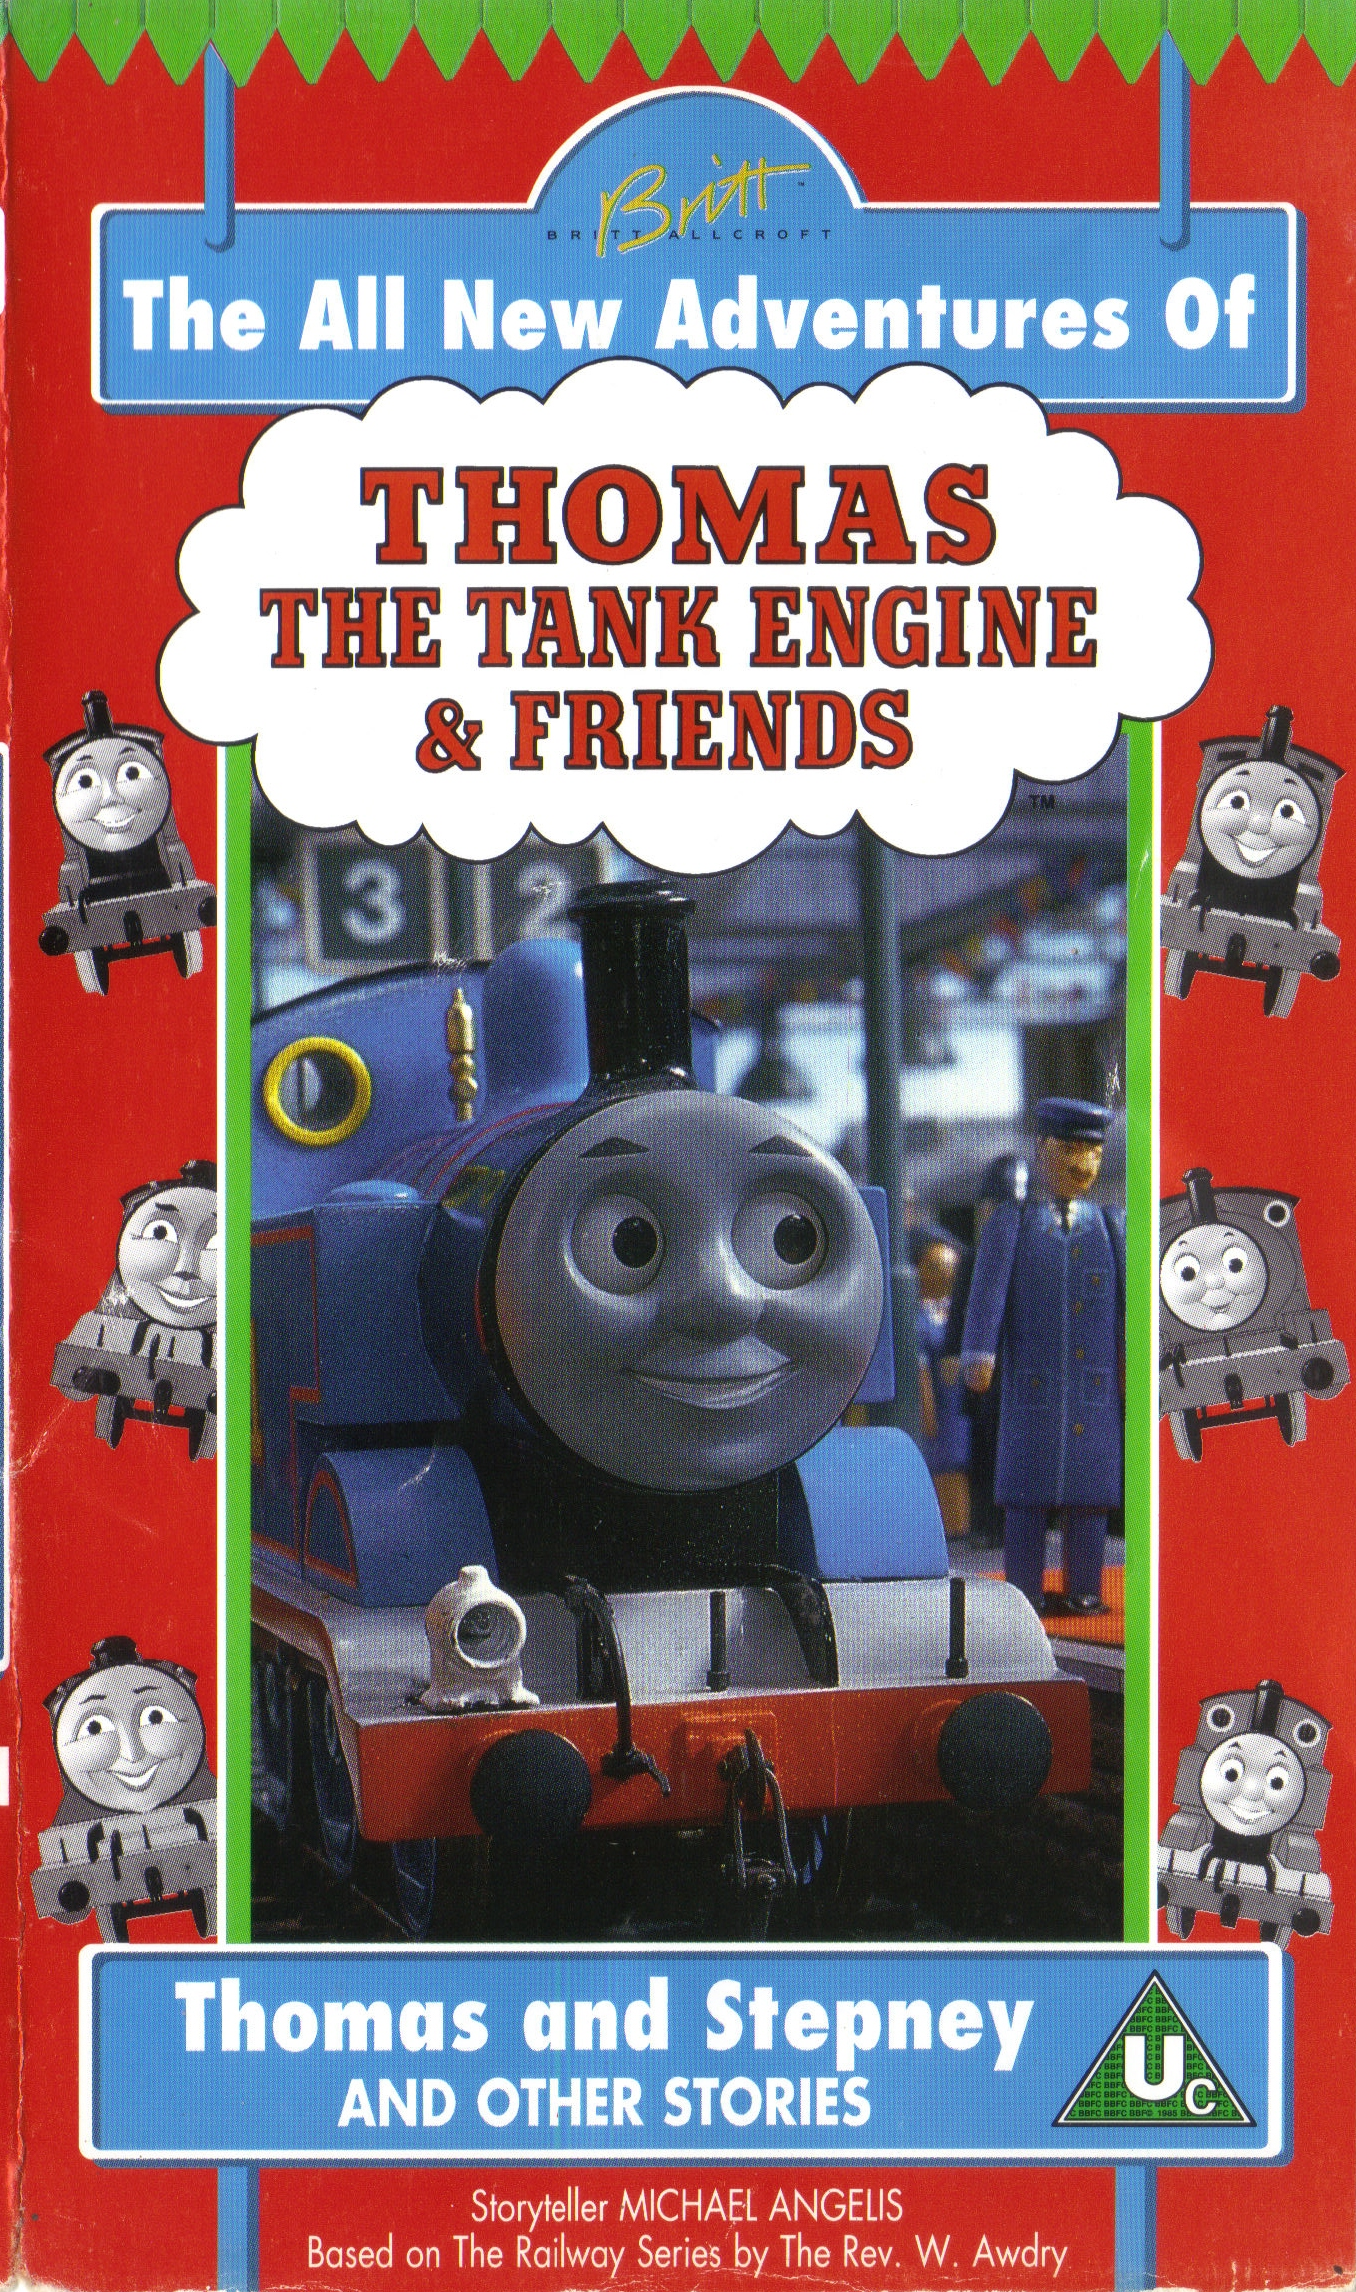 Thomas & Stepney and other Stories